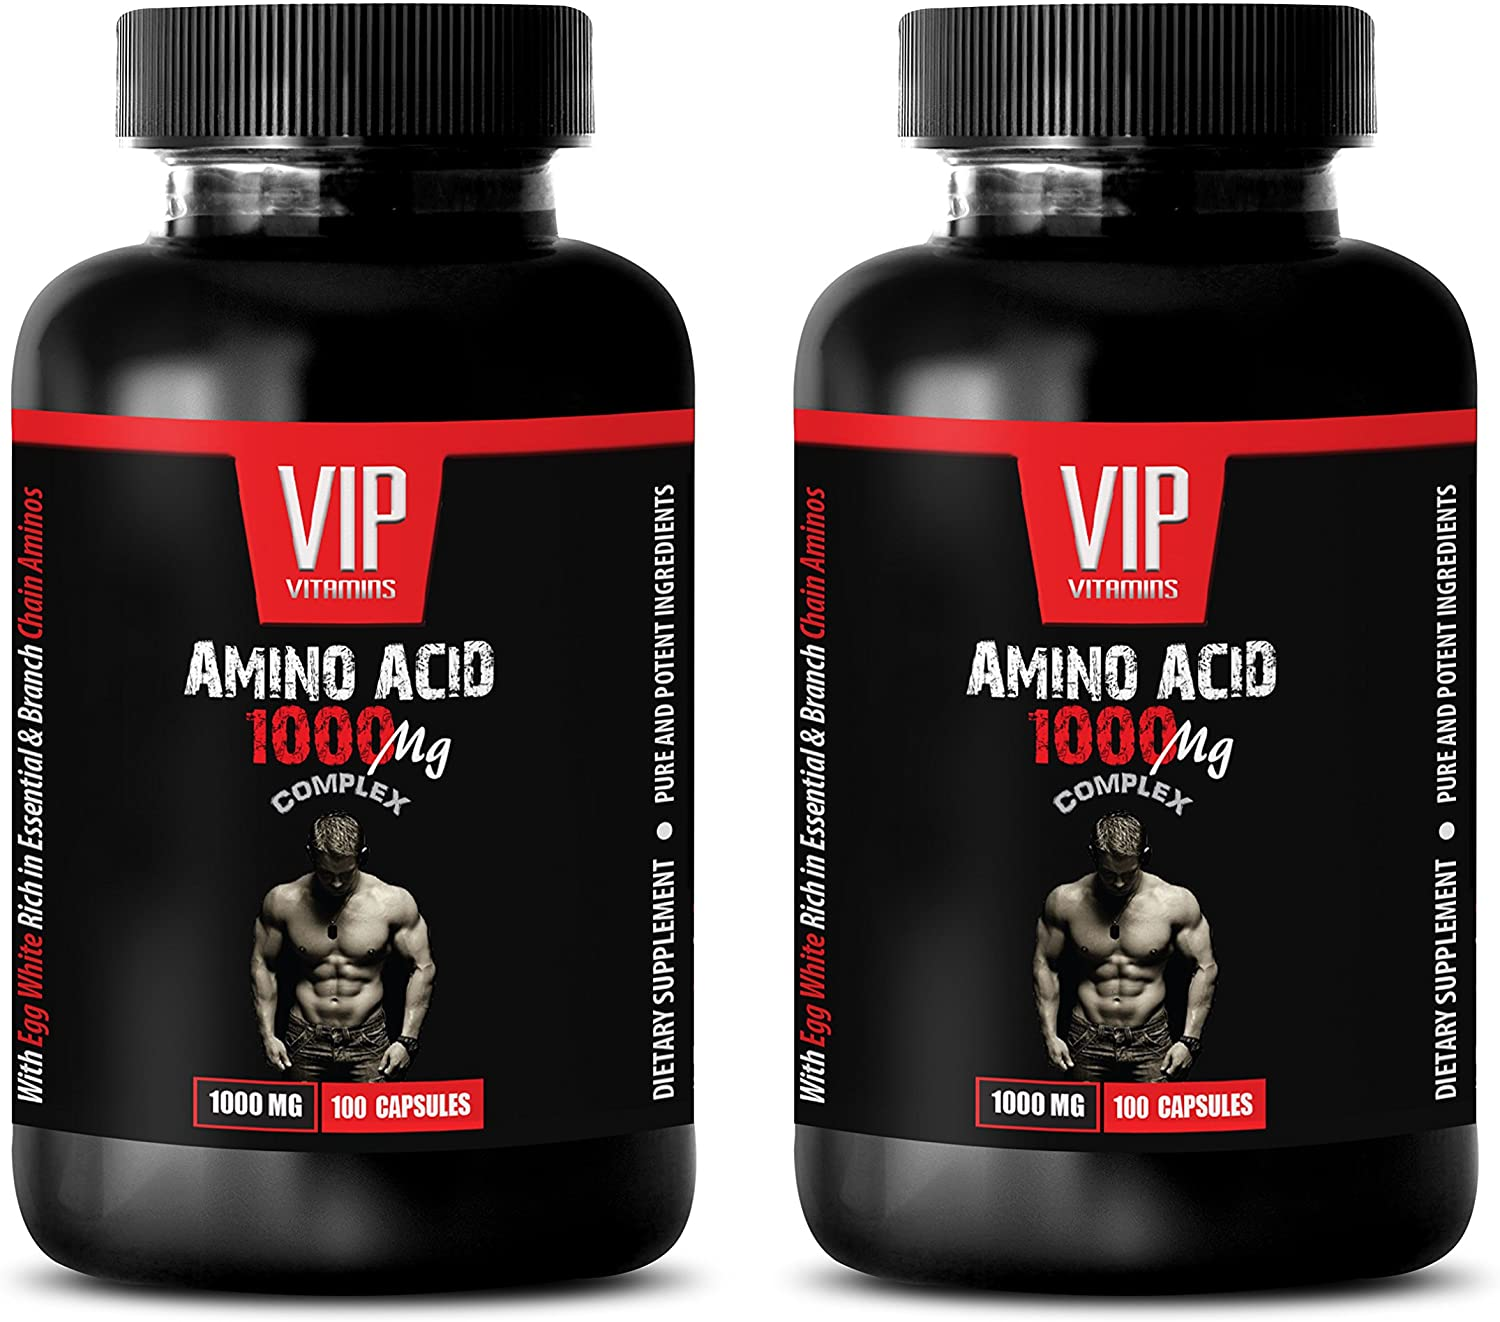 Bodybuilding Supplements for Men Muscle Grow - Amino Acid 1000 MG Complex - l-arginine Nitric Oxide Booster - 2 Bottles 200 Capsules